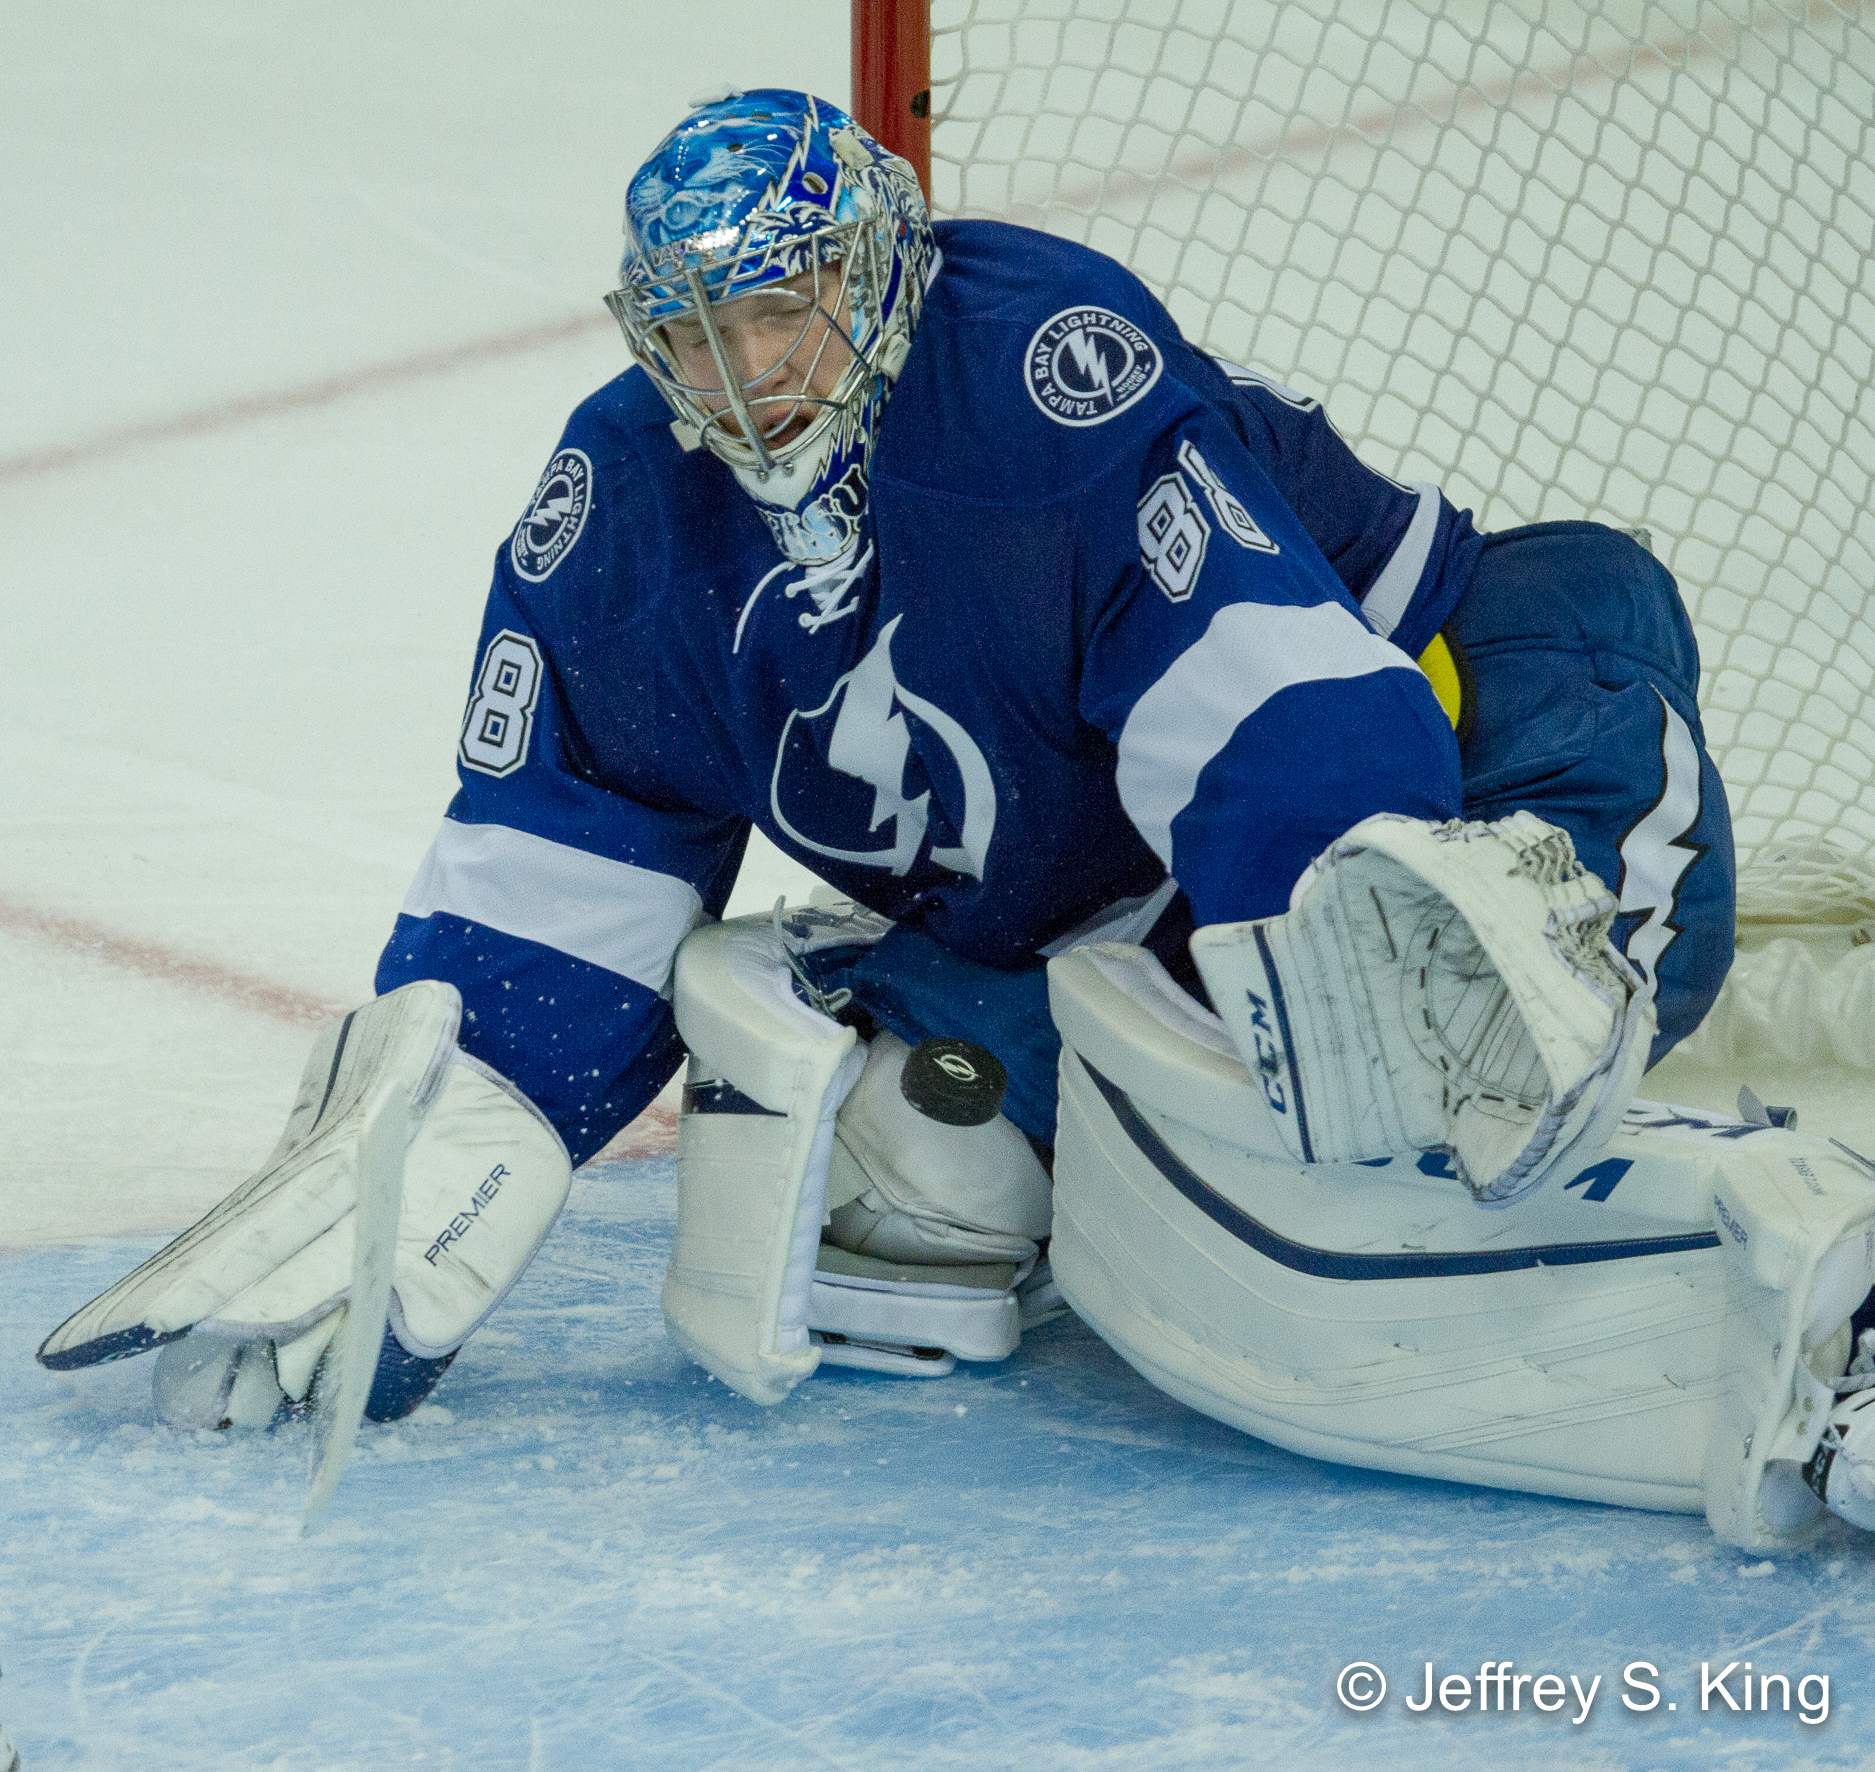 Vasilevskiy stopped 35 shots, but it wasn't enough./JEFFREY S. KING